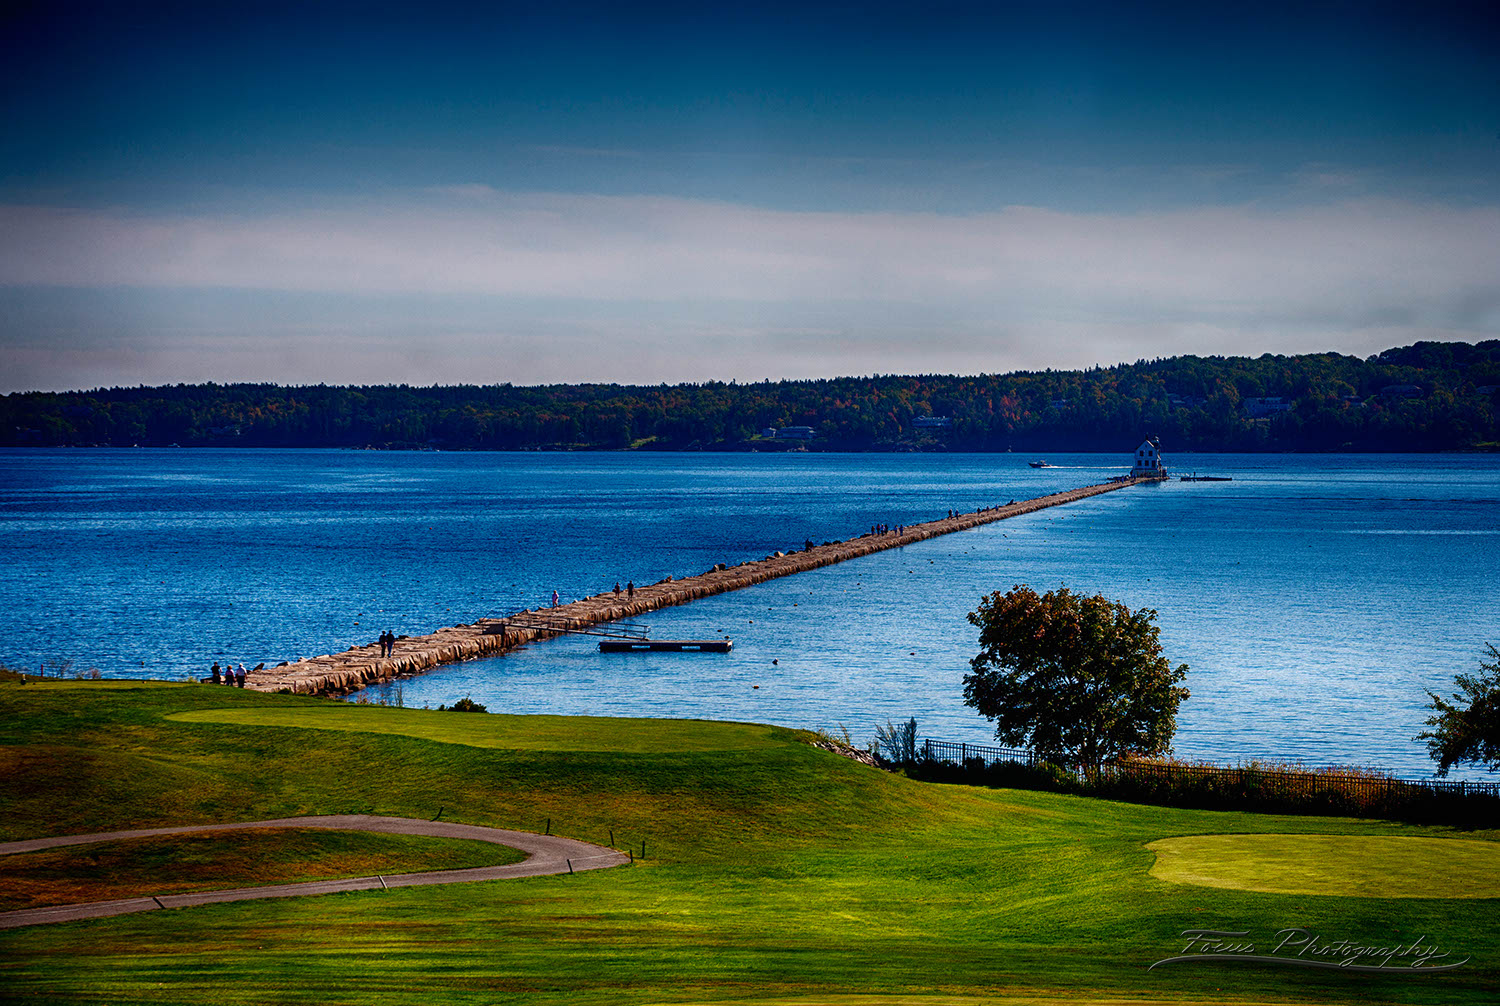 Samoset resort view of Rockport Breakwater in Pennobscott Bay